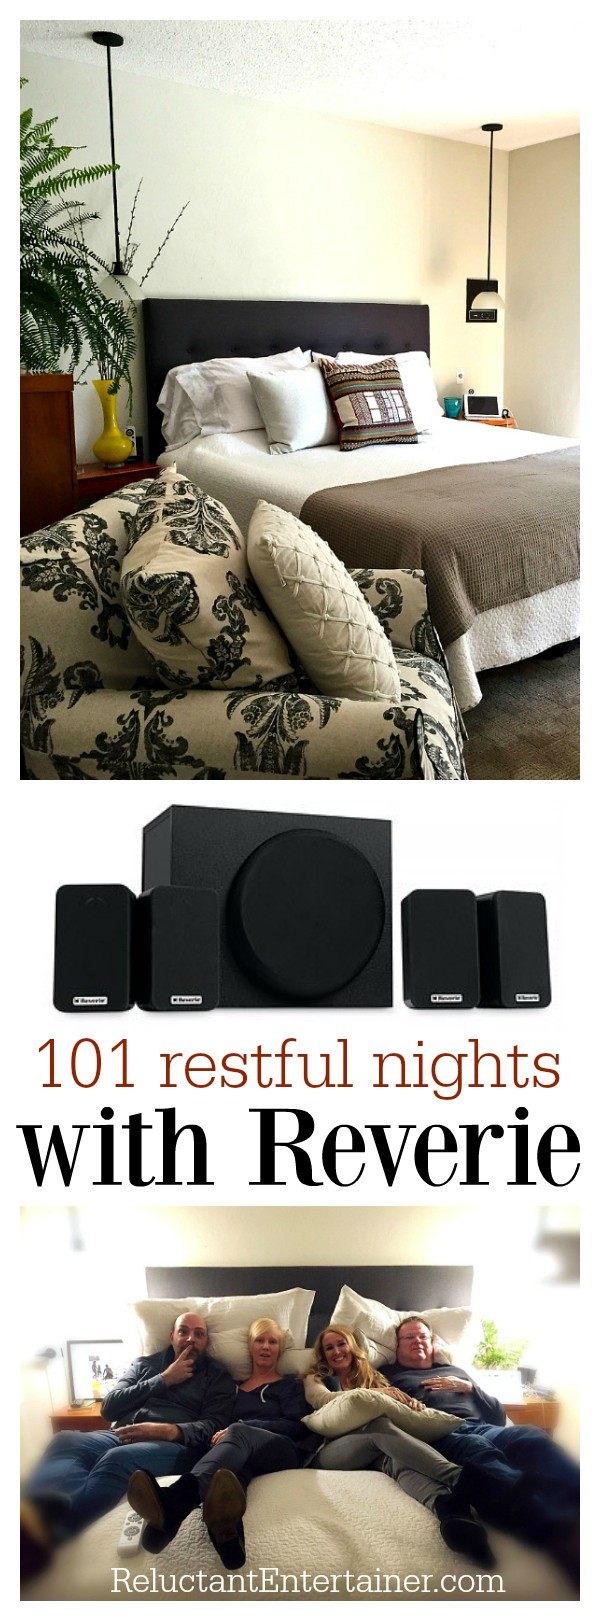 101 Restful Nights with Reverie